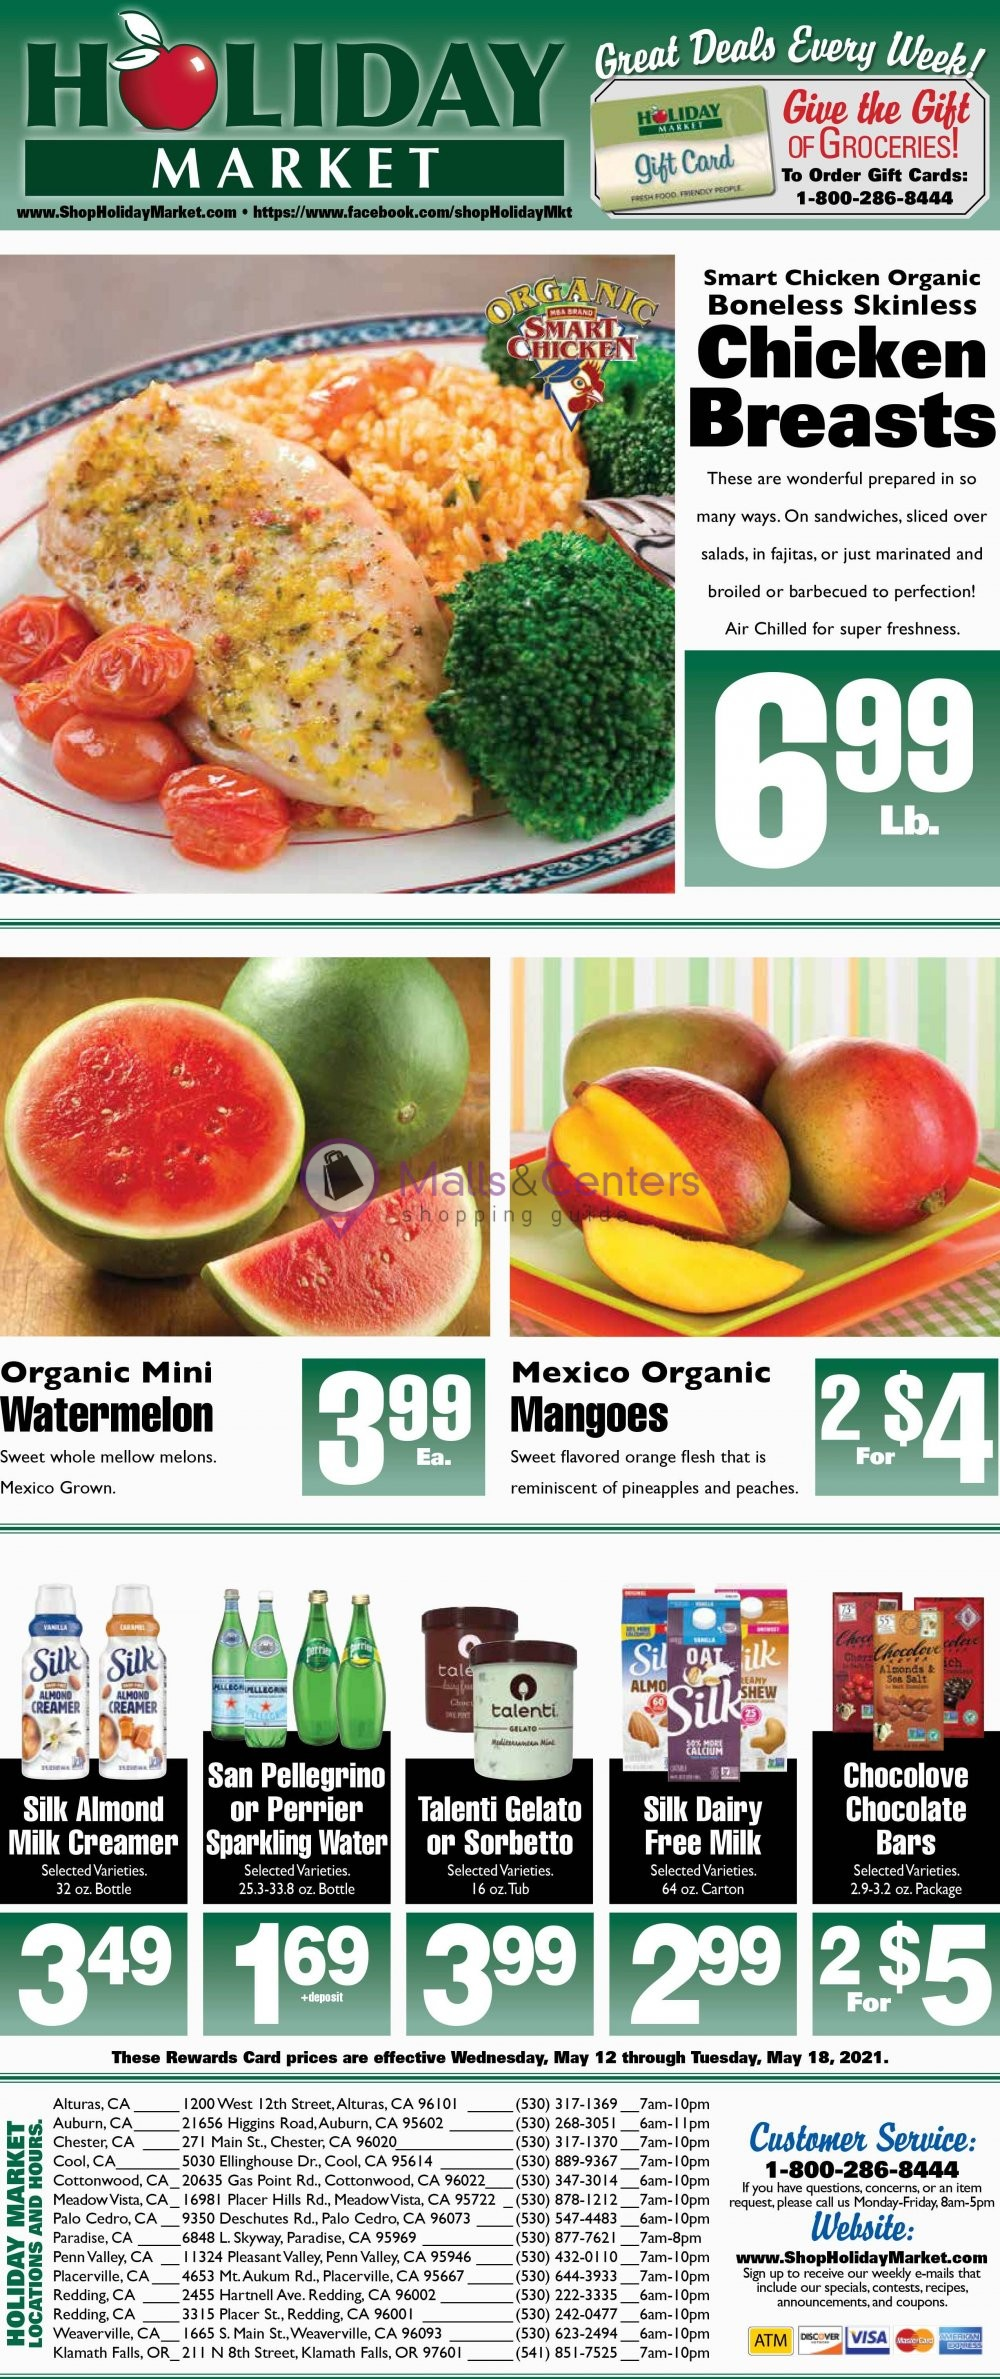 weekly ads Holiday Market - page 1 - mallscenters.com